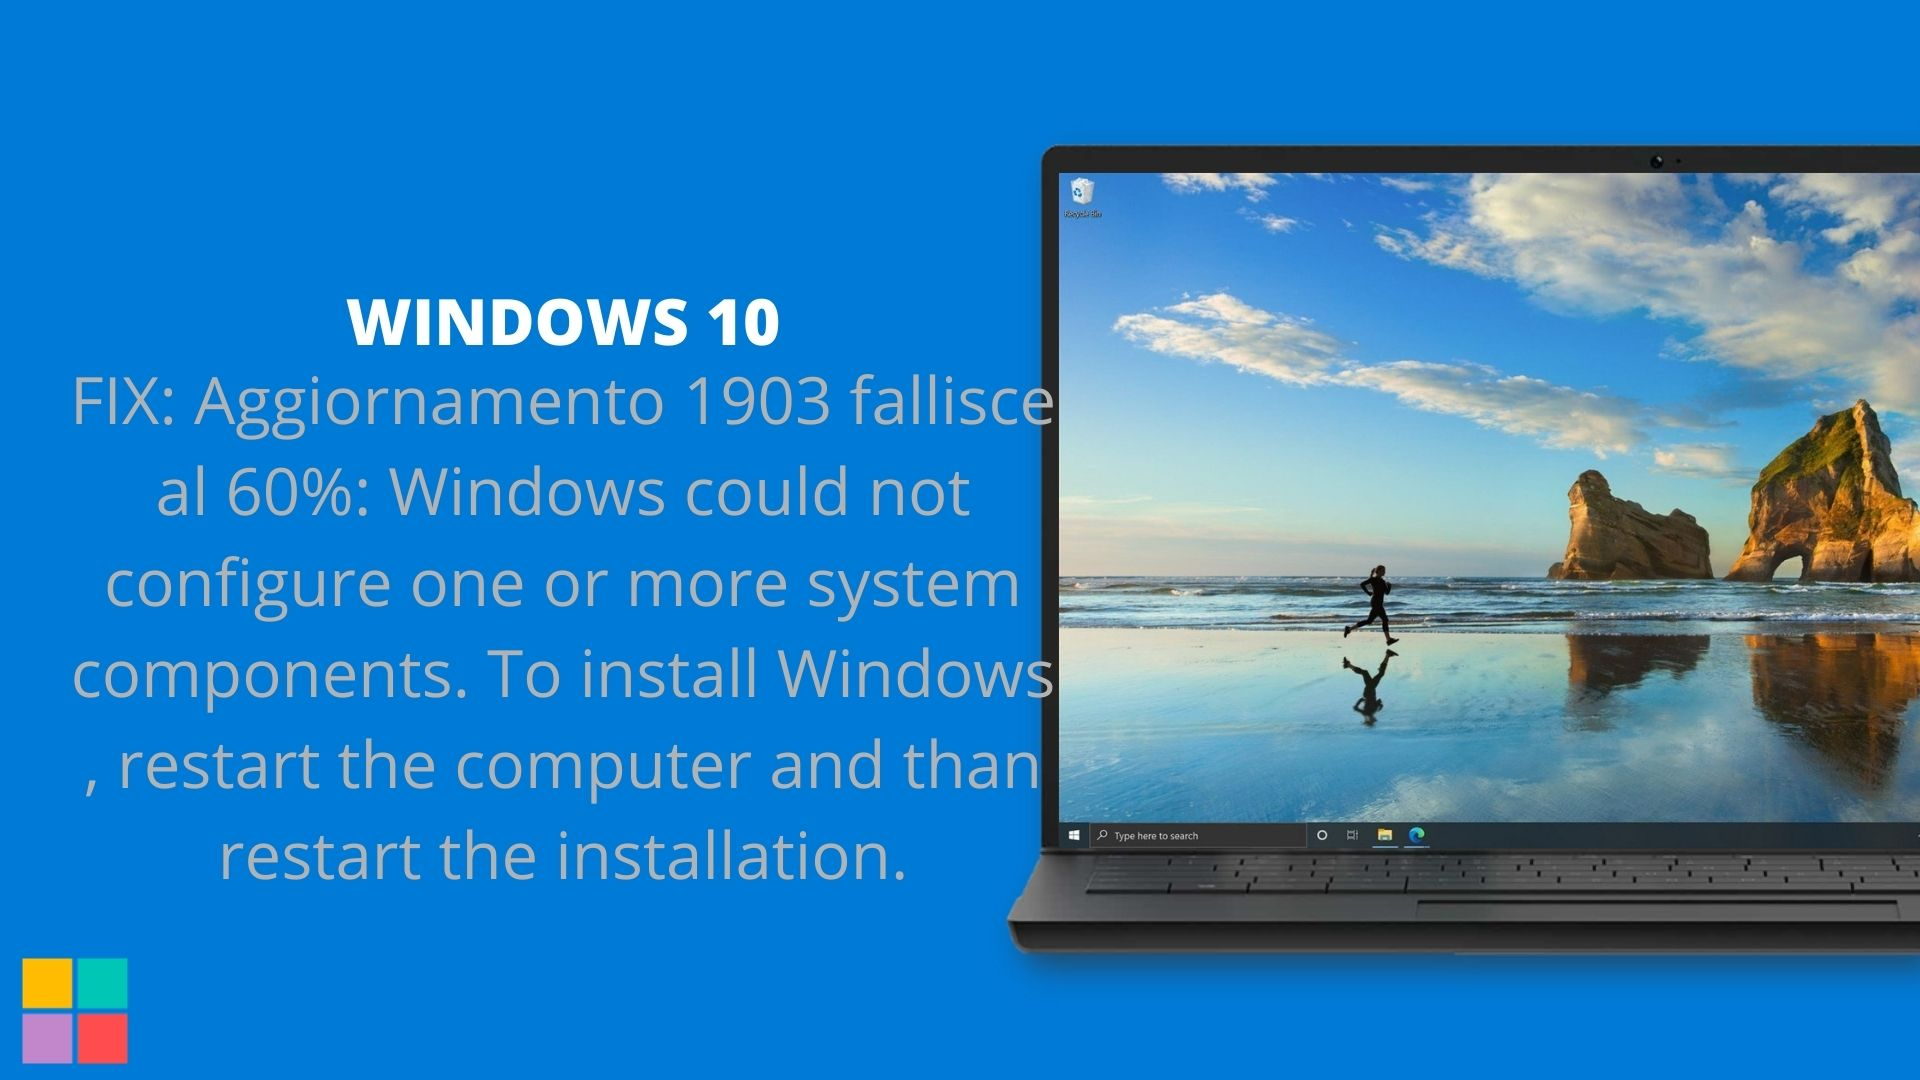 FIX: Aggiornamento 1903 fallisce al 60%: Windows could not configure one or more system components. To install Windows , restart the computer and than restart the installation.